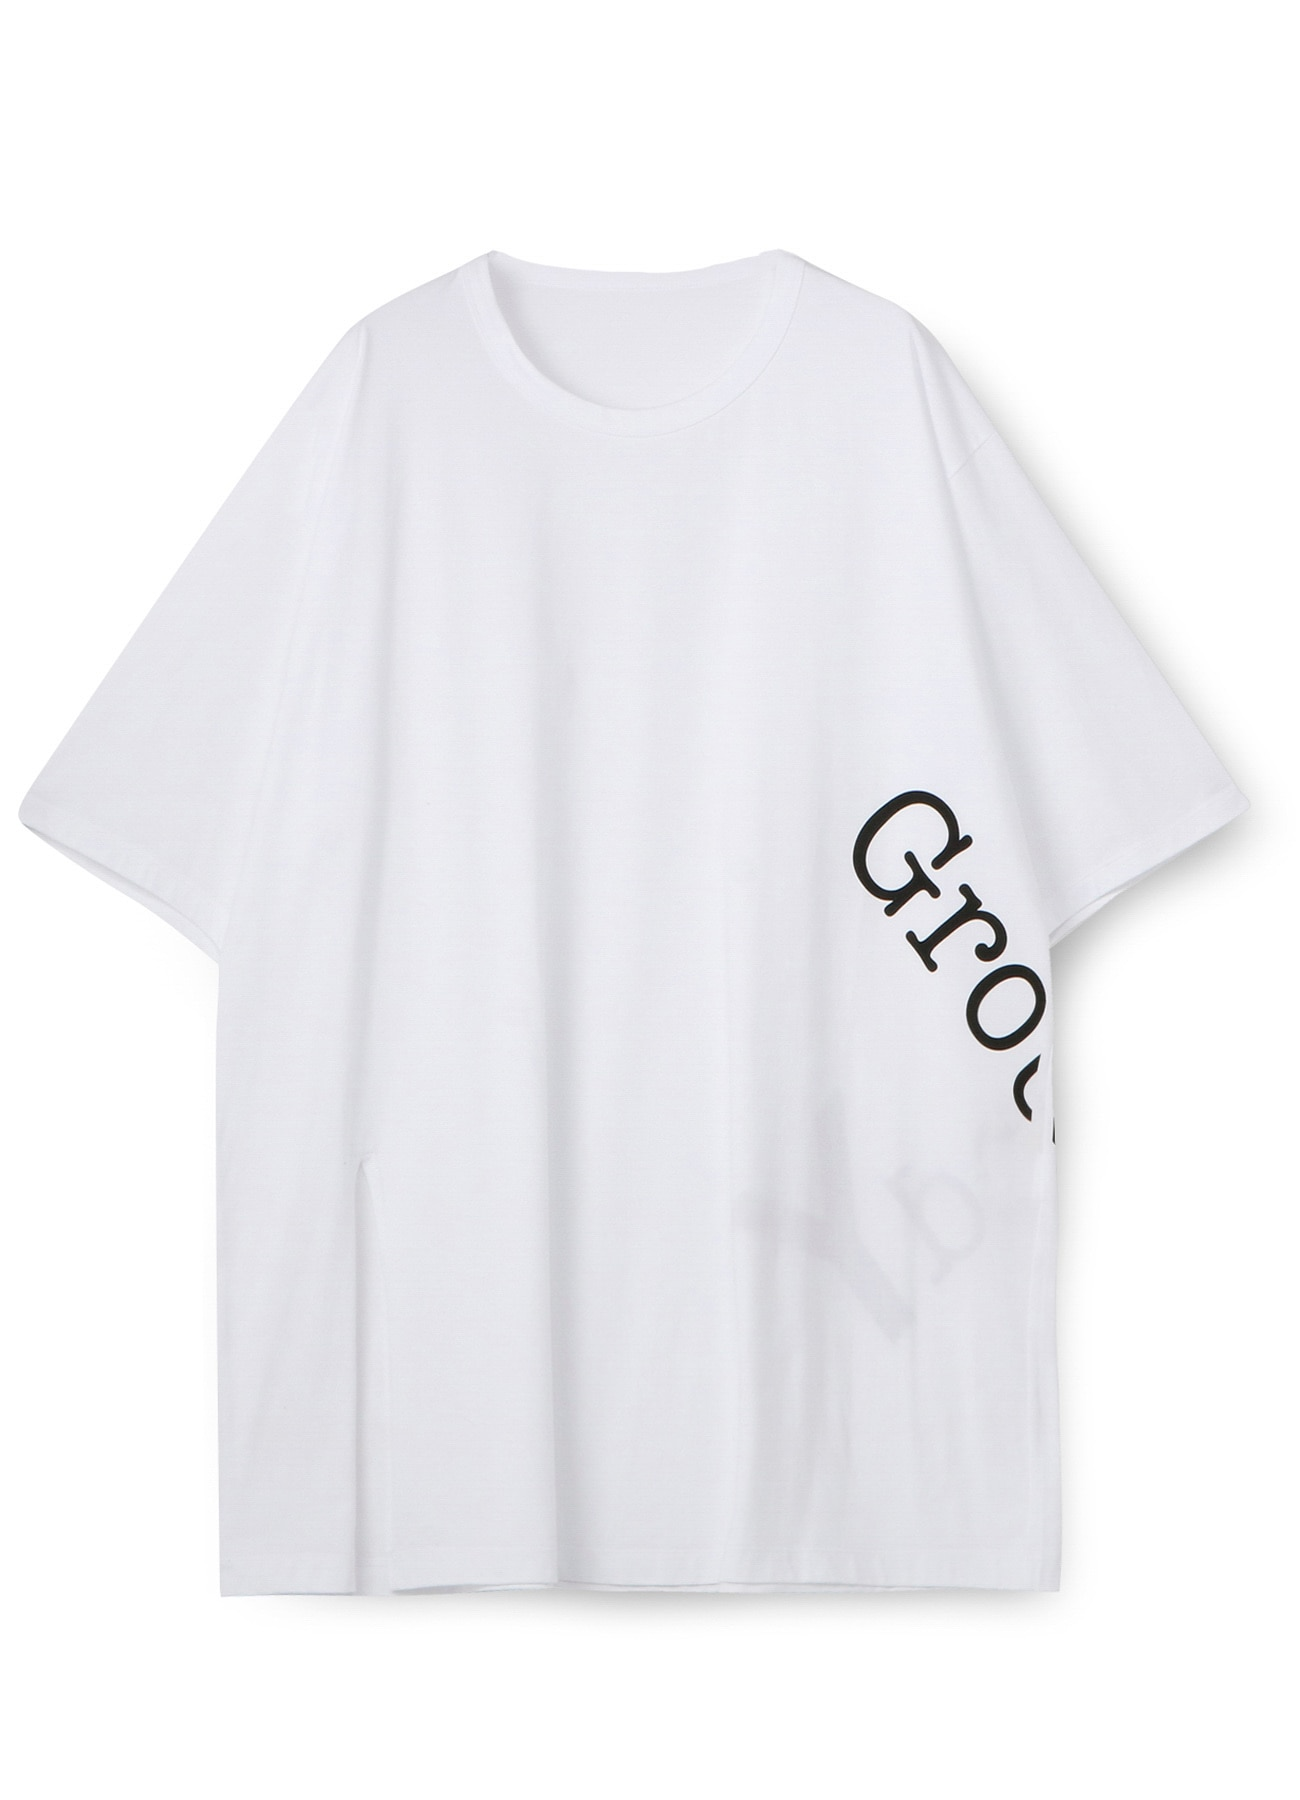 30 / cotton Jersey GY Logo Jumbo Graphic T